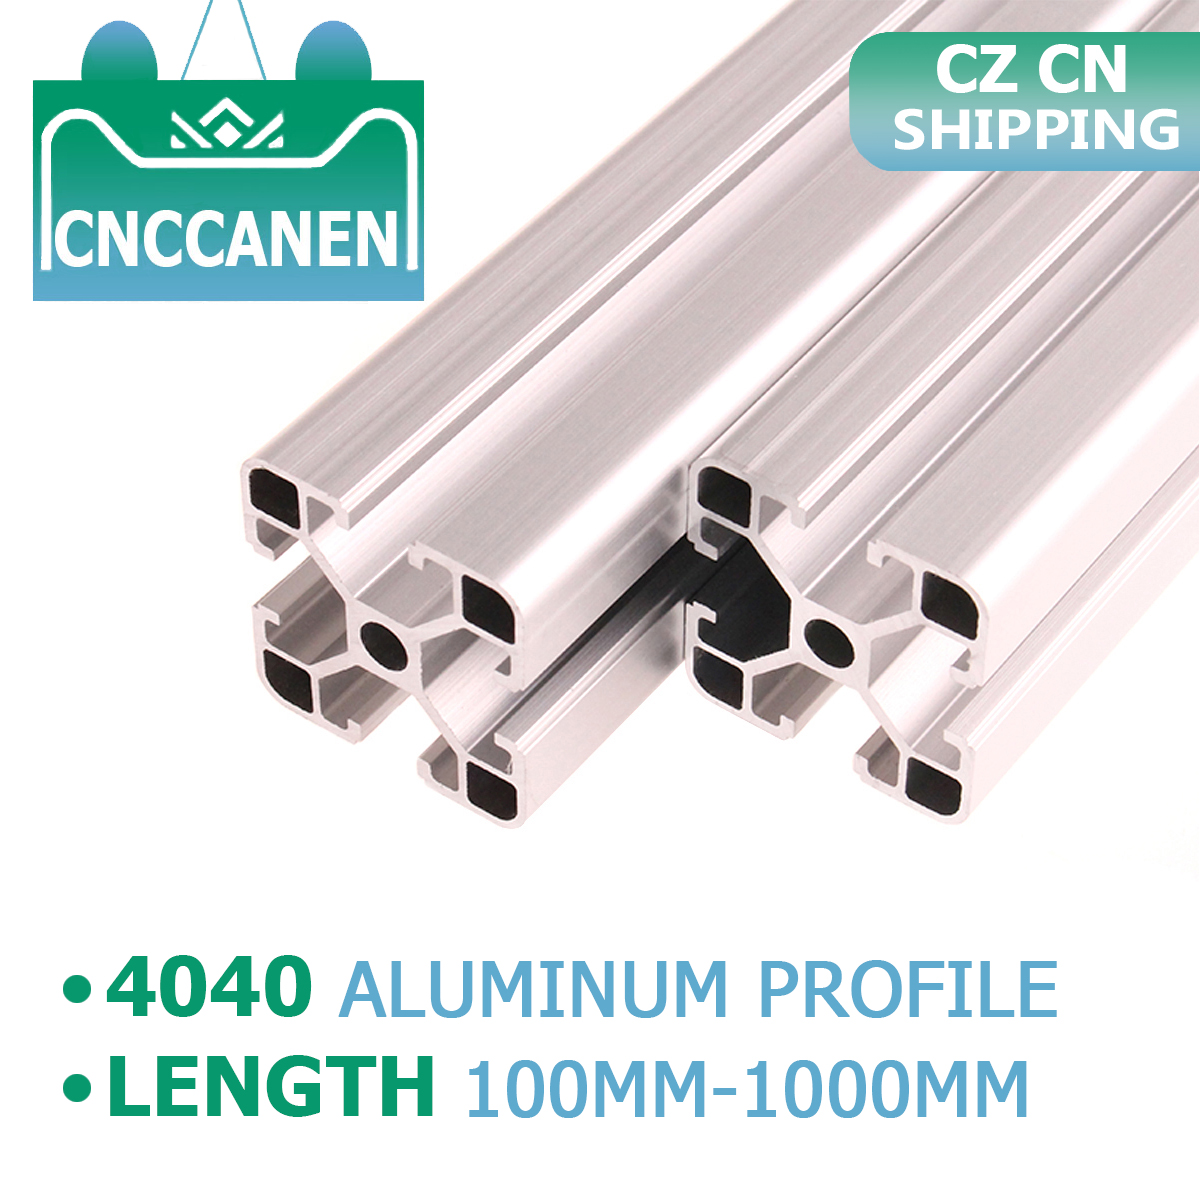 CZ CN Shipping 2PCS 4040 Aluminum Profile Extrusion 100mm-1000mm Length European Standard Anodized For CNC 3D Printer Parts DIY